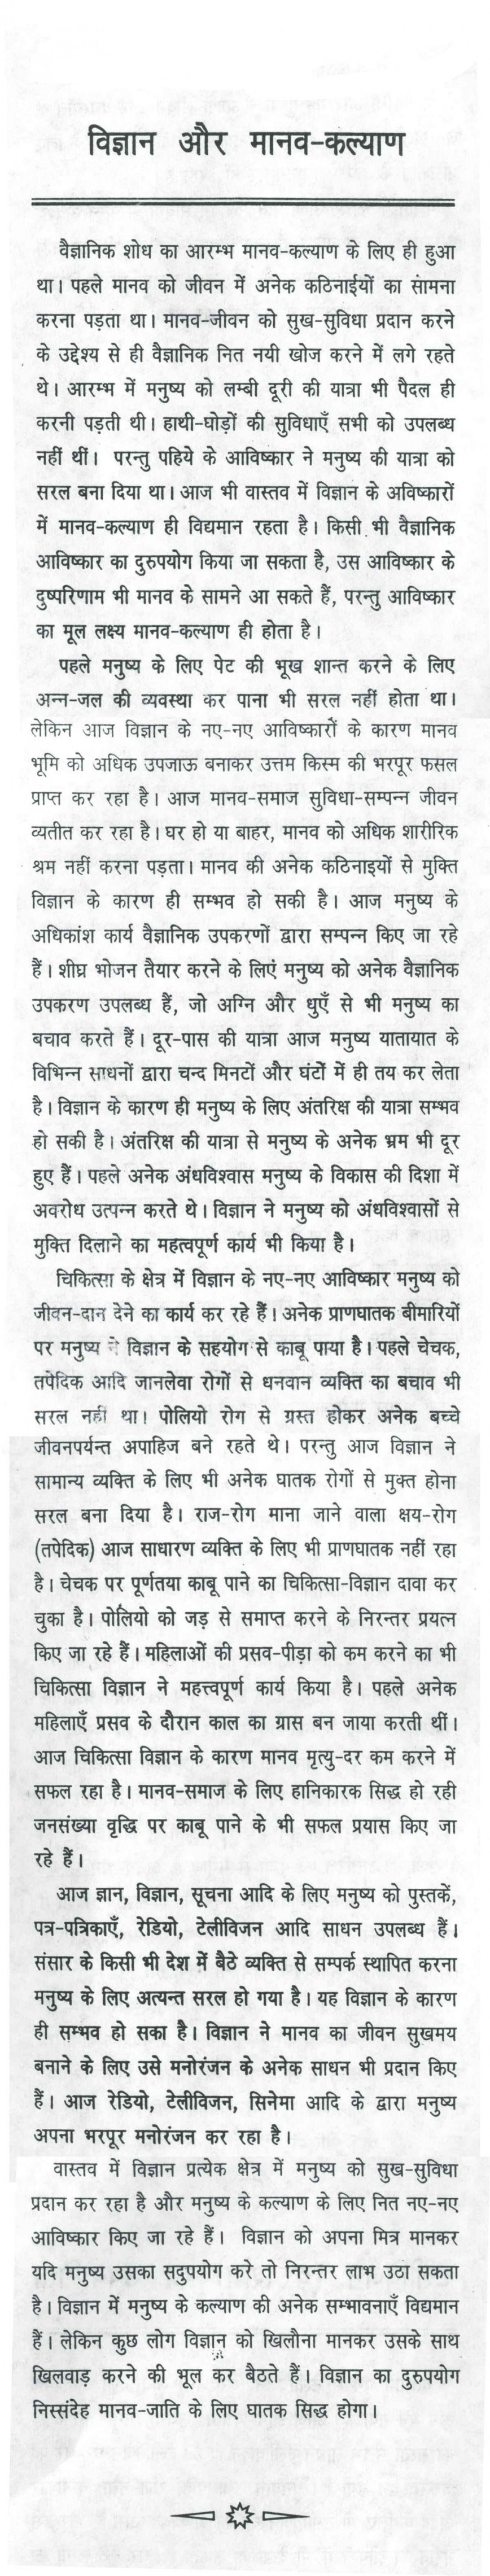 019 Advantage And Disadvantage Of Science Essay Example Benefit Education On Importance In Hindi Advantages Disadvantages Higher 10061 Benefits Shocking With Quotes Language 868